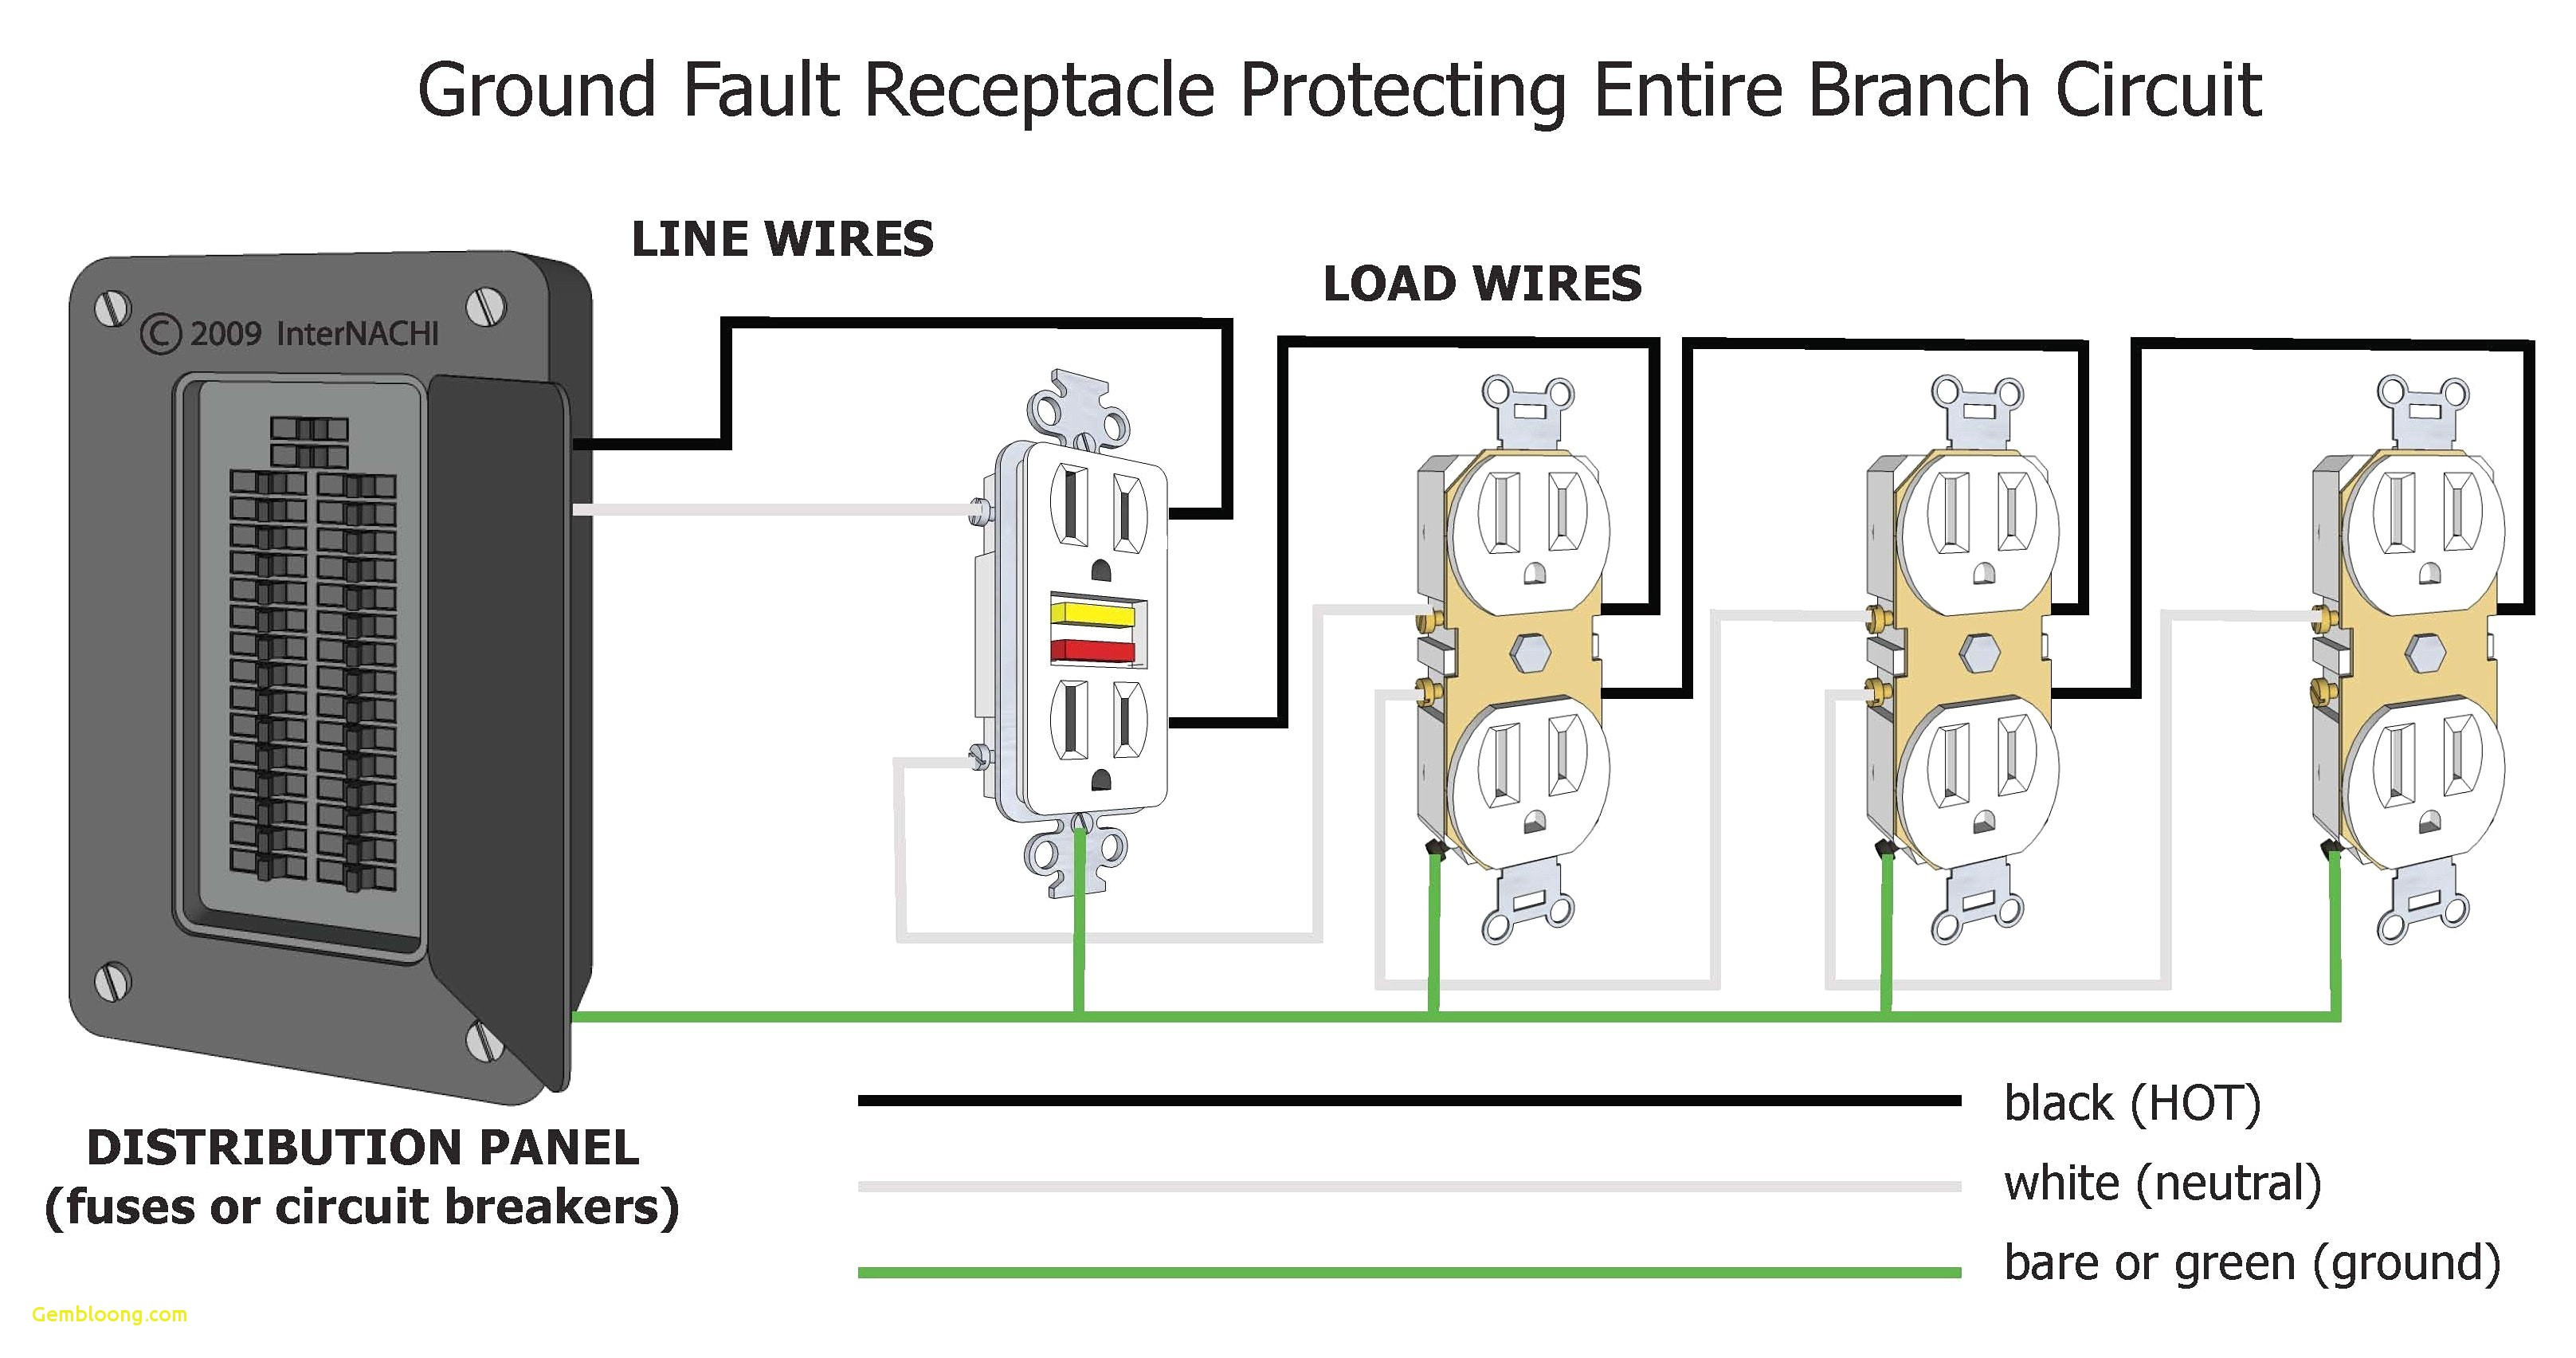 gfci receptacle wiring diagram Download-Wiring Diagram For A Gfci Outlet Refrence Wiring Gfi Outlet Wiring Diagrams Schematics 18-a